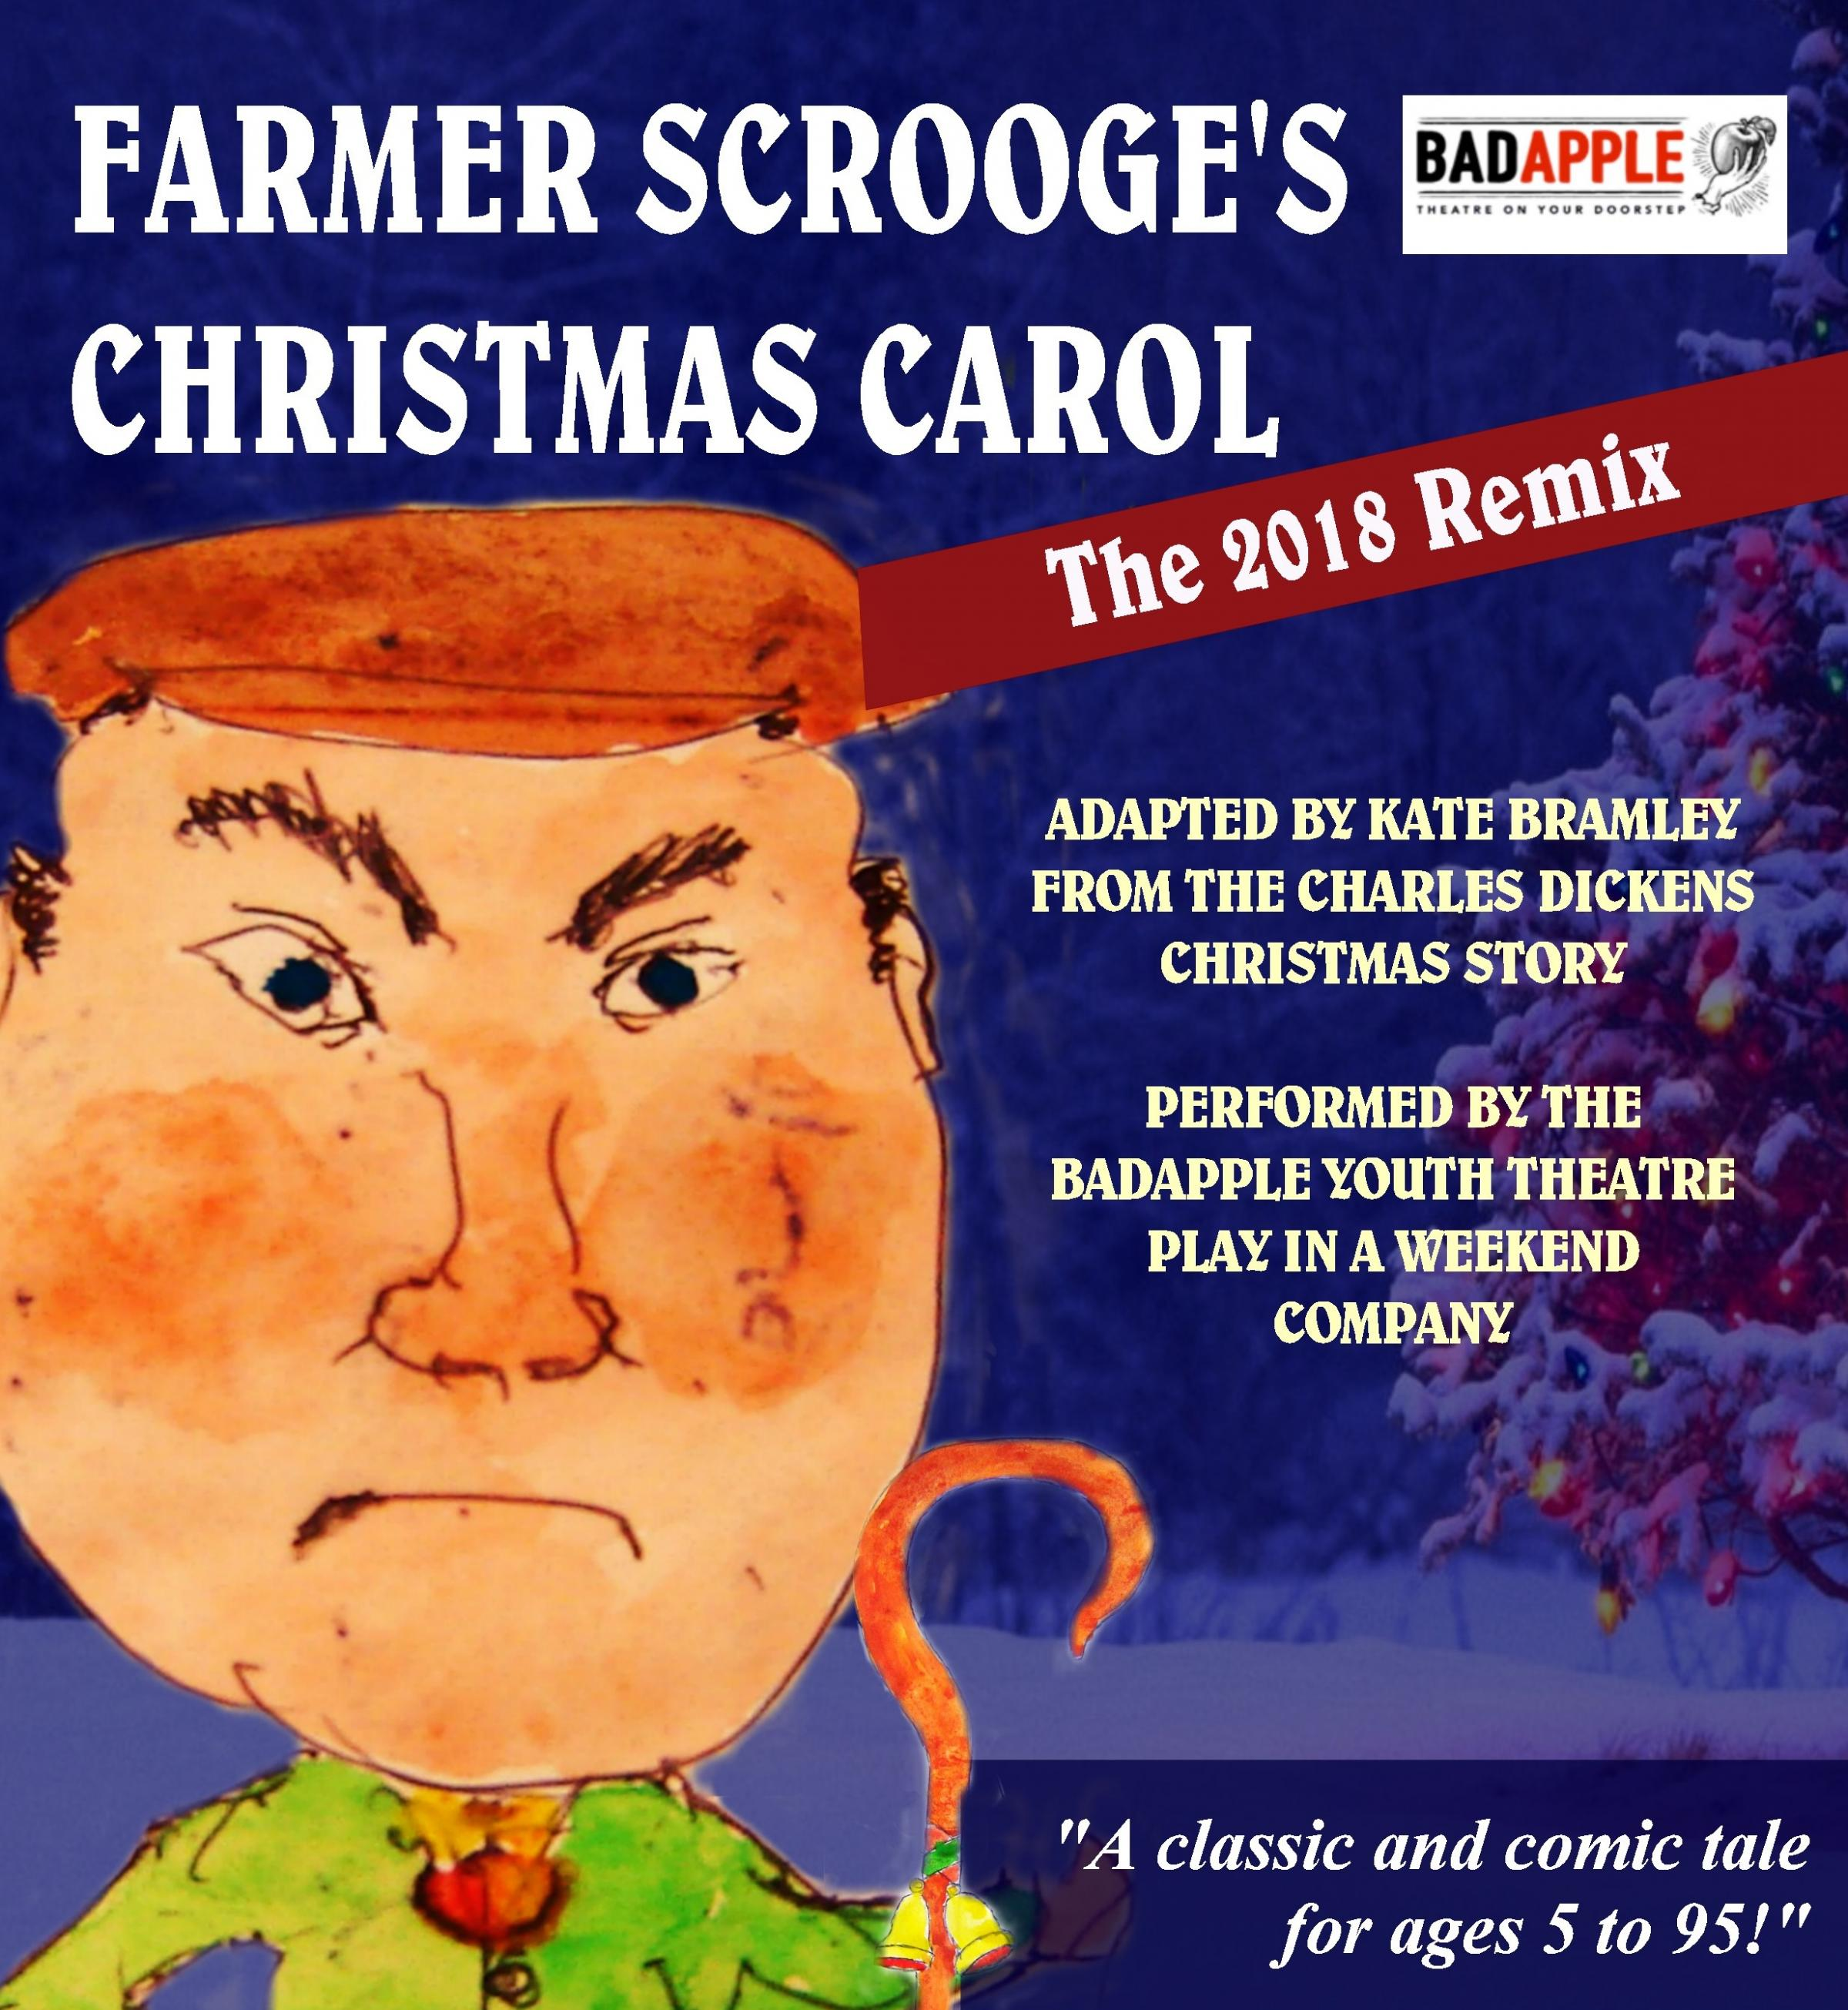 Badapple Youth Theatre's poster for Farmer Scrooge's Christmas Carol